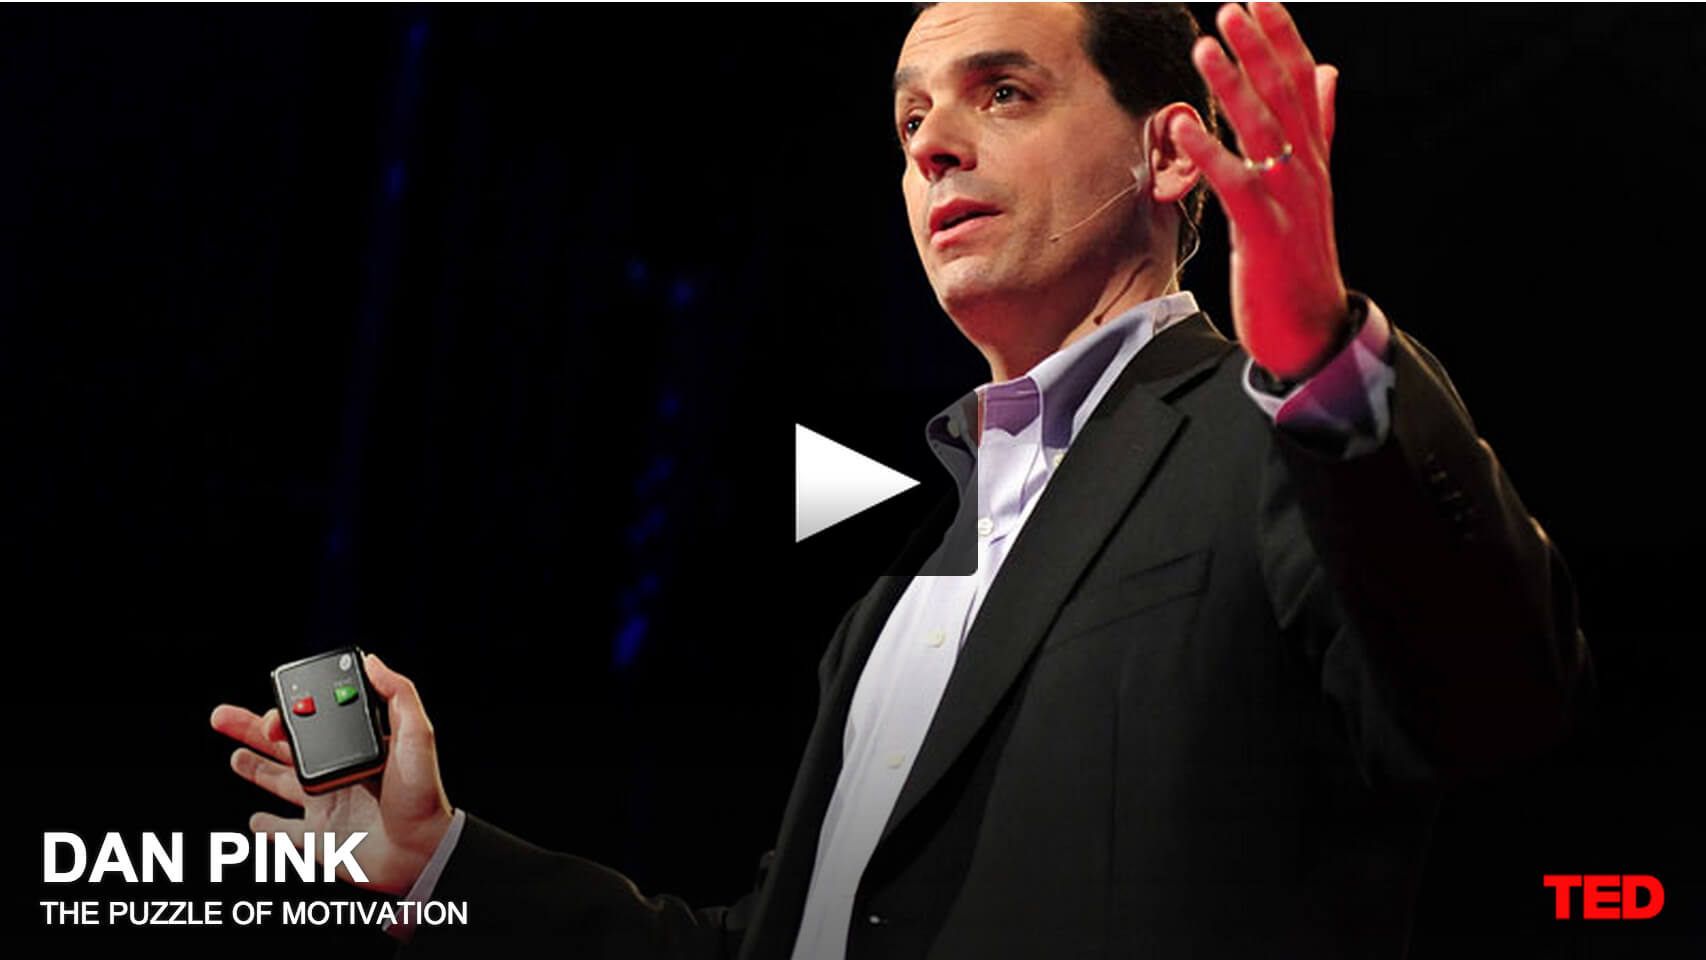 motivation and daniel h pink Drive: the surprising truth about what motivates us by daniel h pink riverhead books, 2009 in drive, pink compellingly challenges the old assumptions about how to motivate people and repair the mismatch between what science knows and what business does.